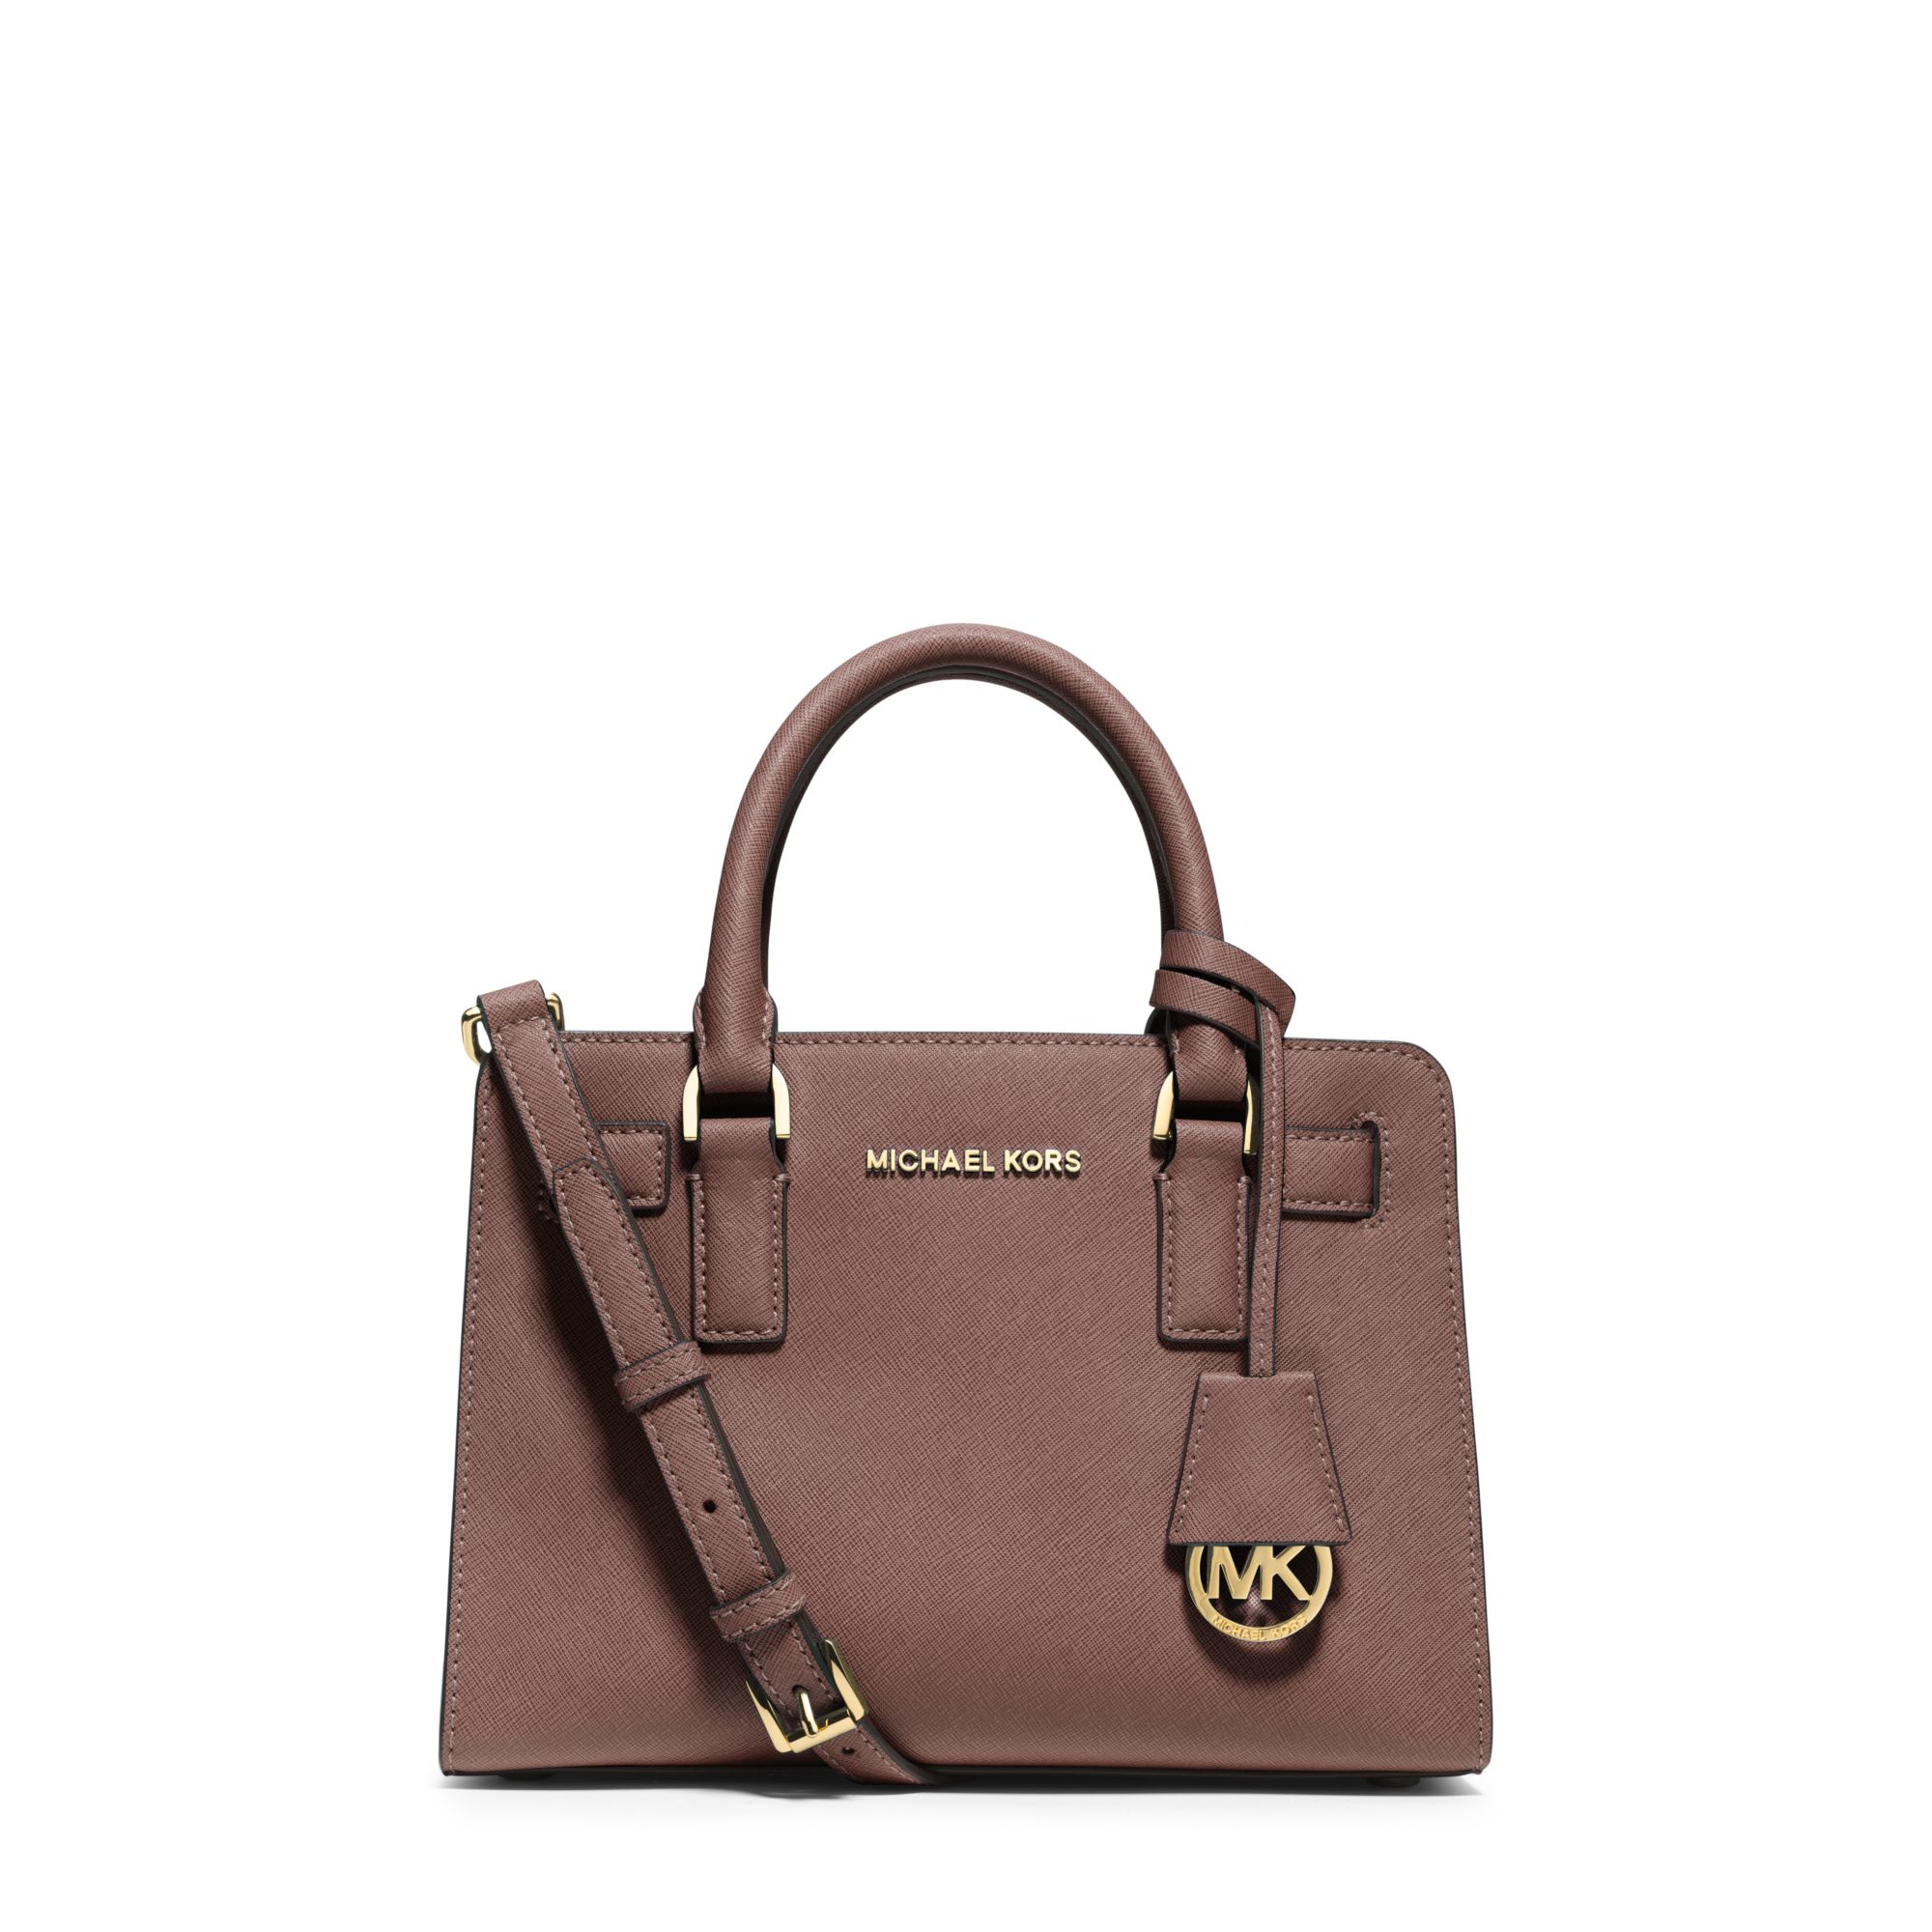 87cea35b72bfb Lyst - Michael Kors Dillon Small Saffiano-Leather Satchel in Brown